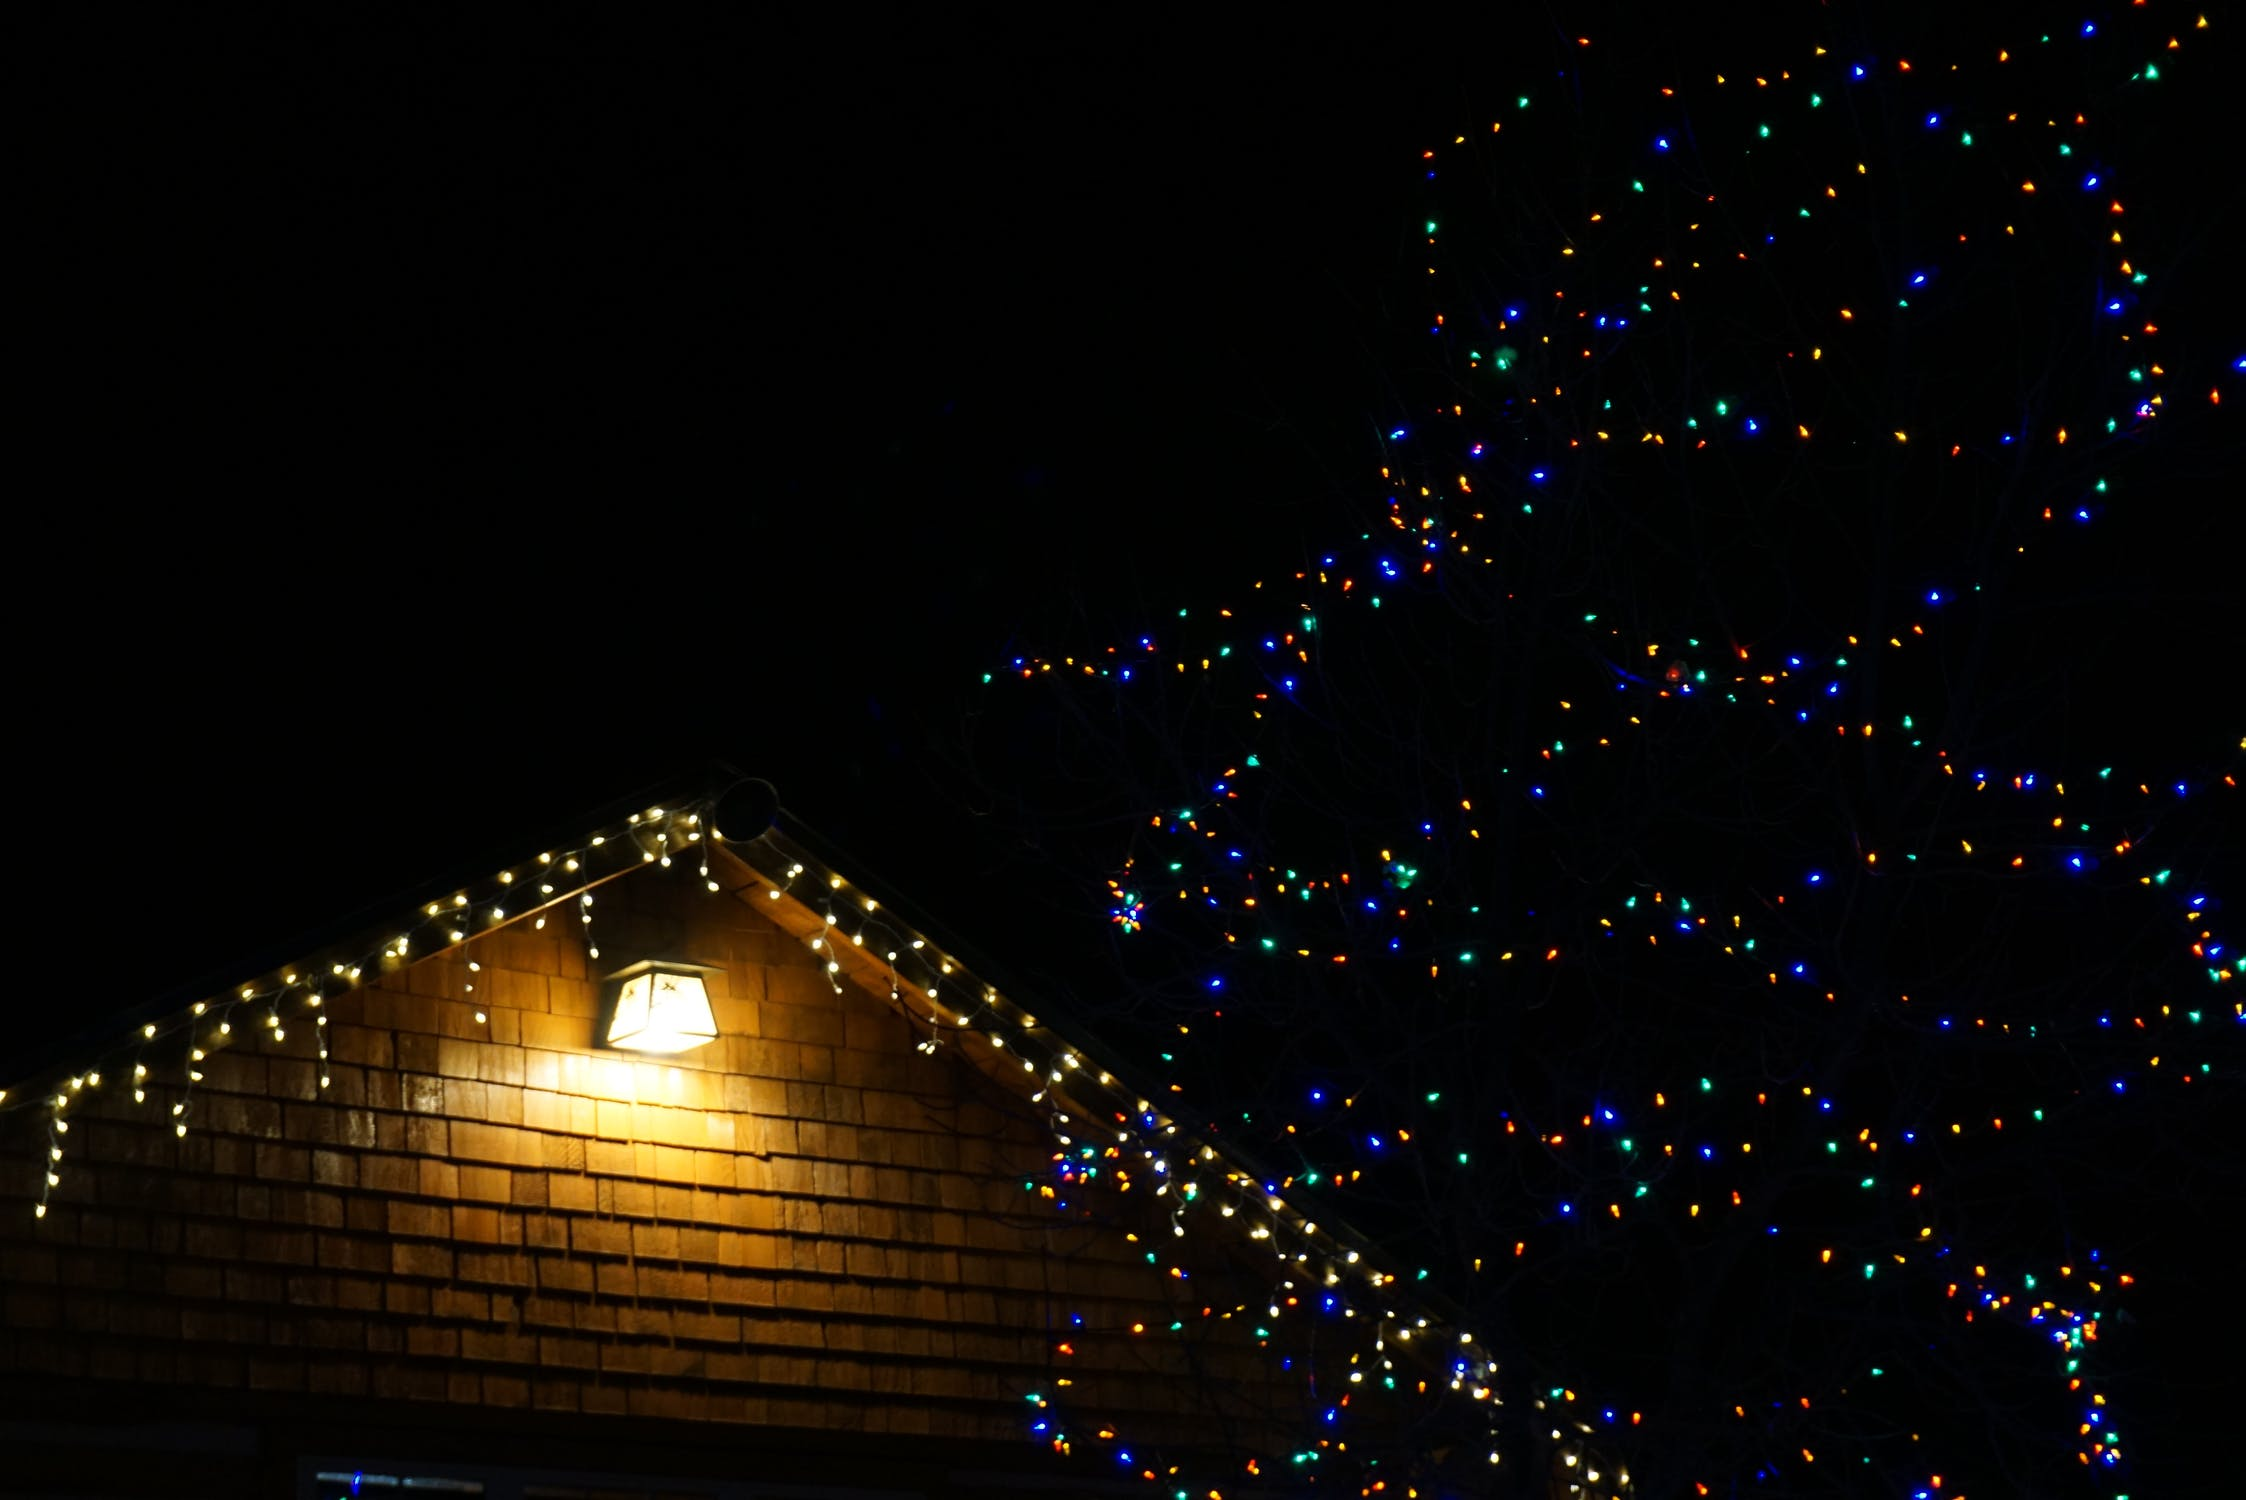 How to Make a Christmas Light Show in Your Yard